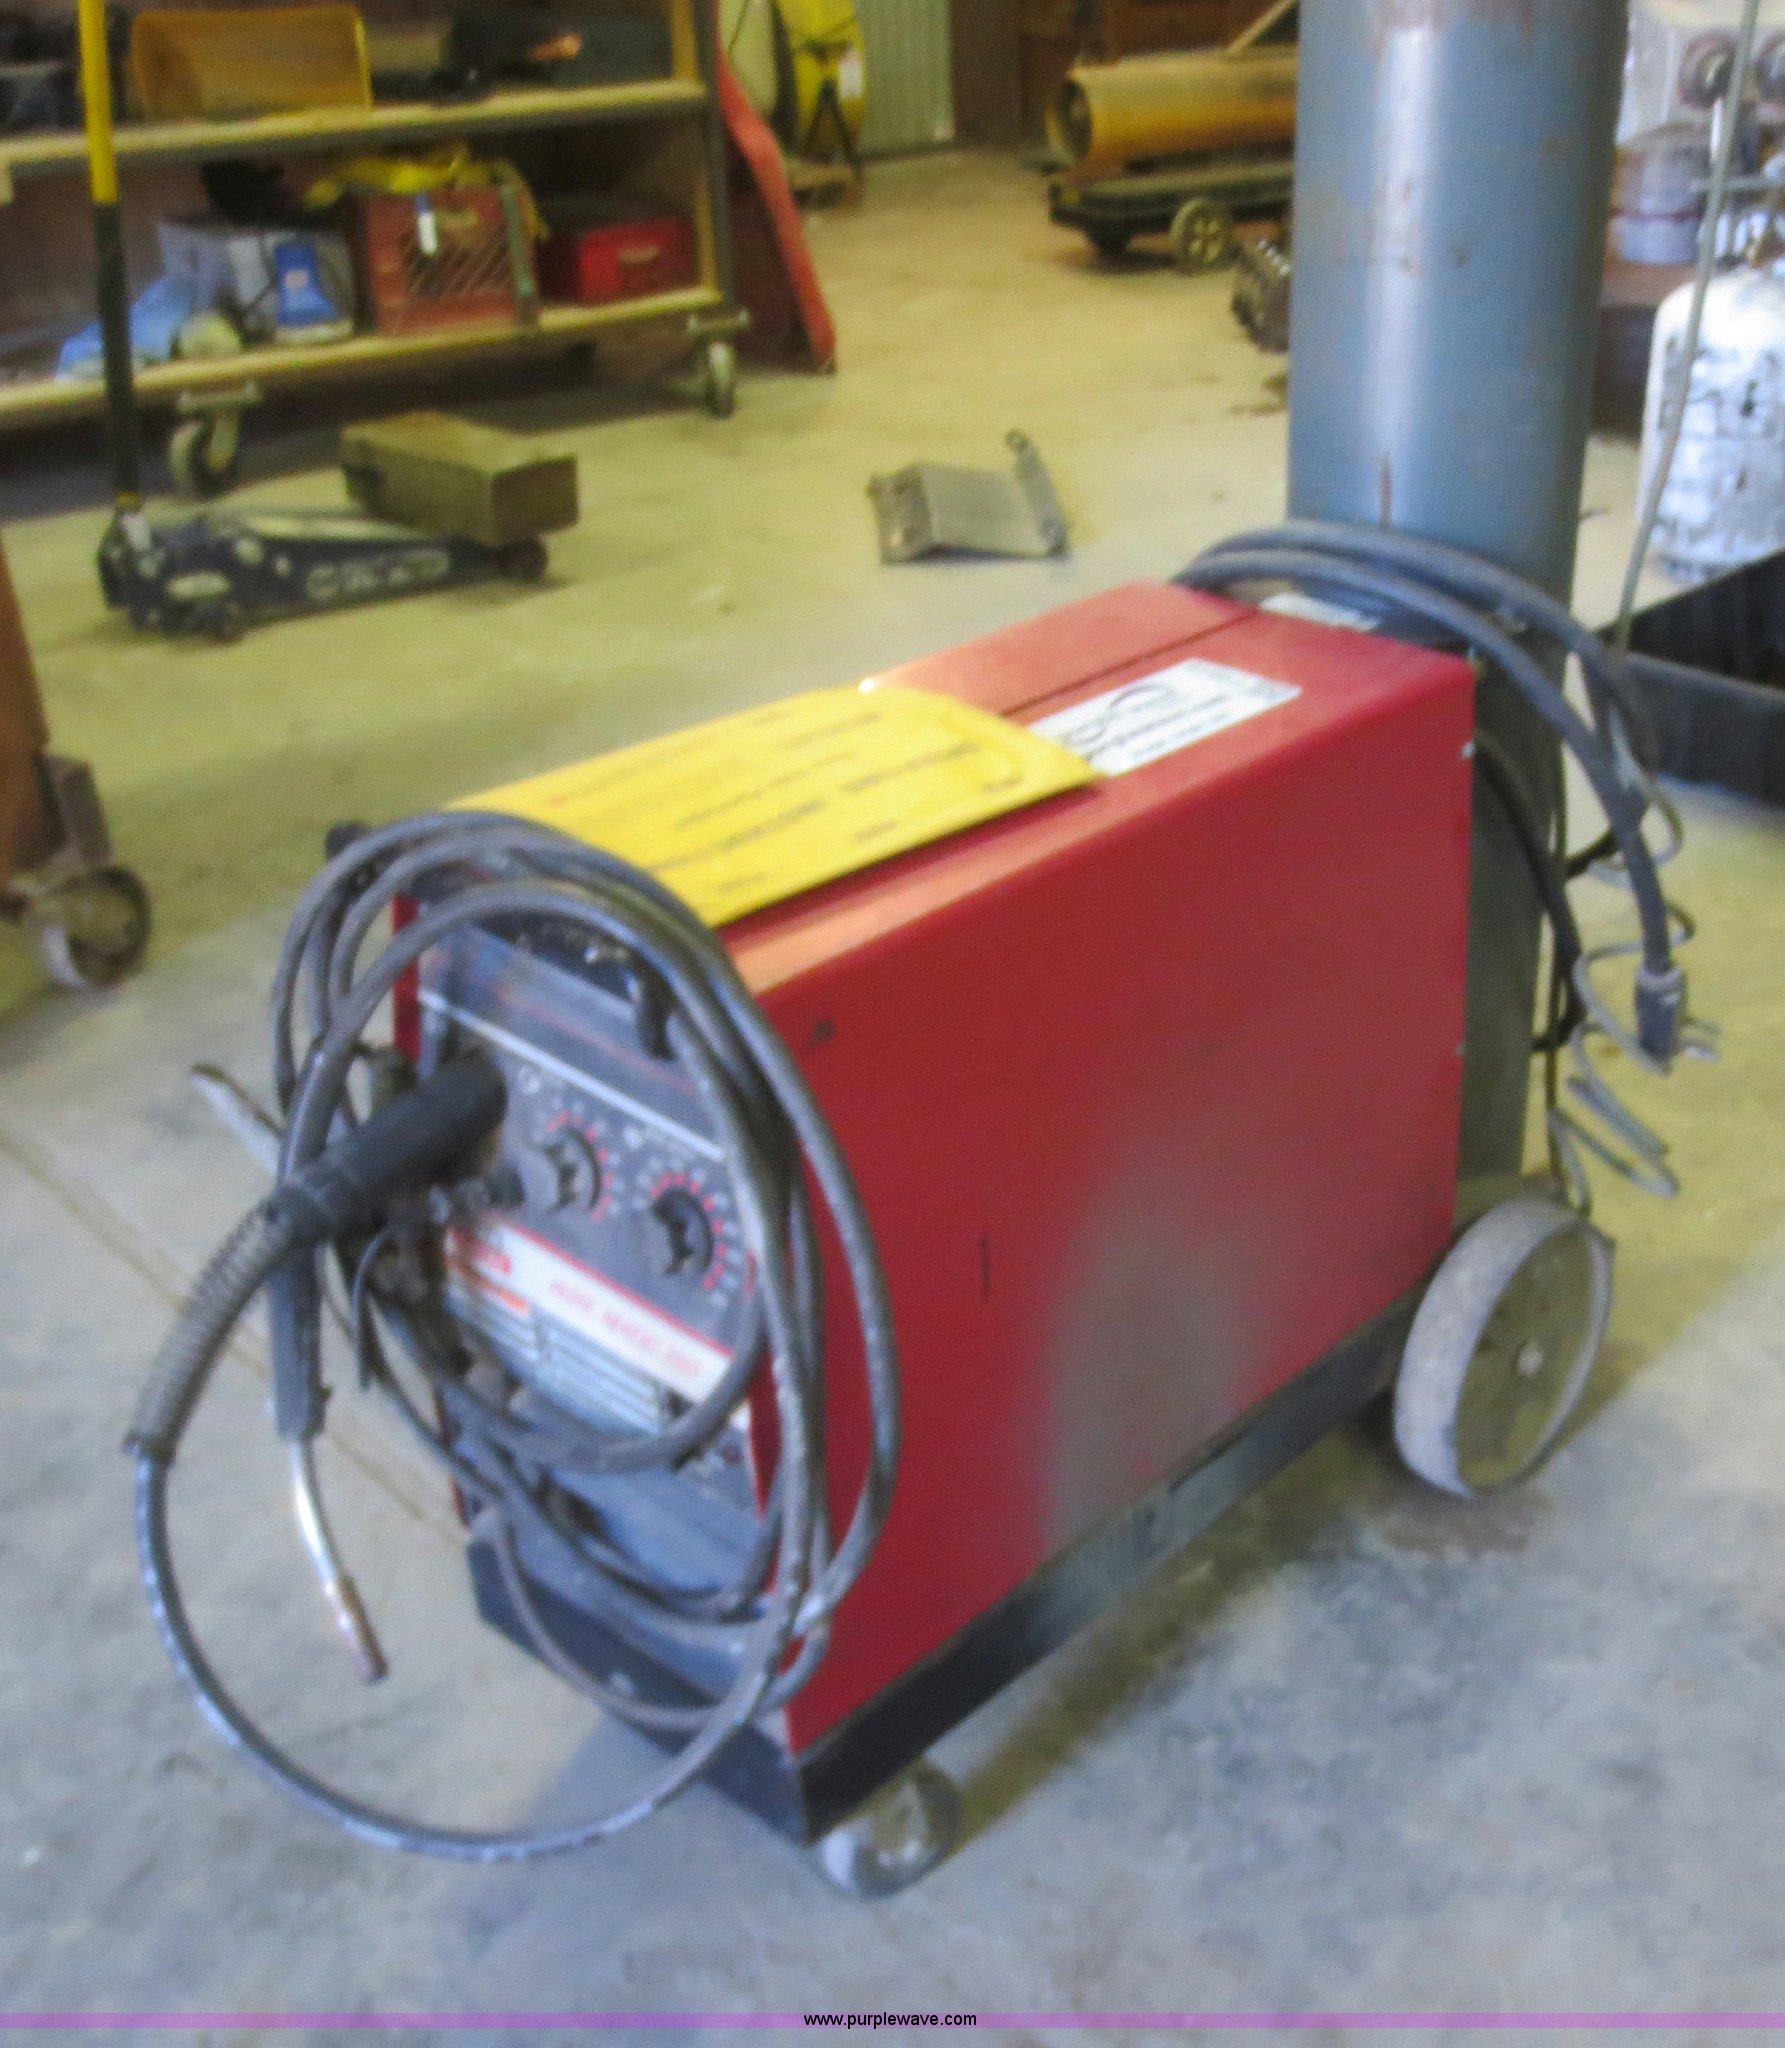 Lincoln Wire-Matic 250 MIG welder | Item F6819 | SOLD! March...